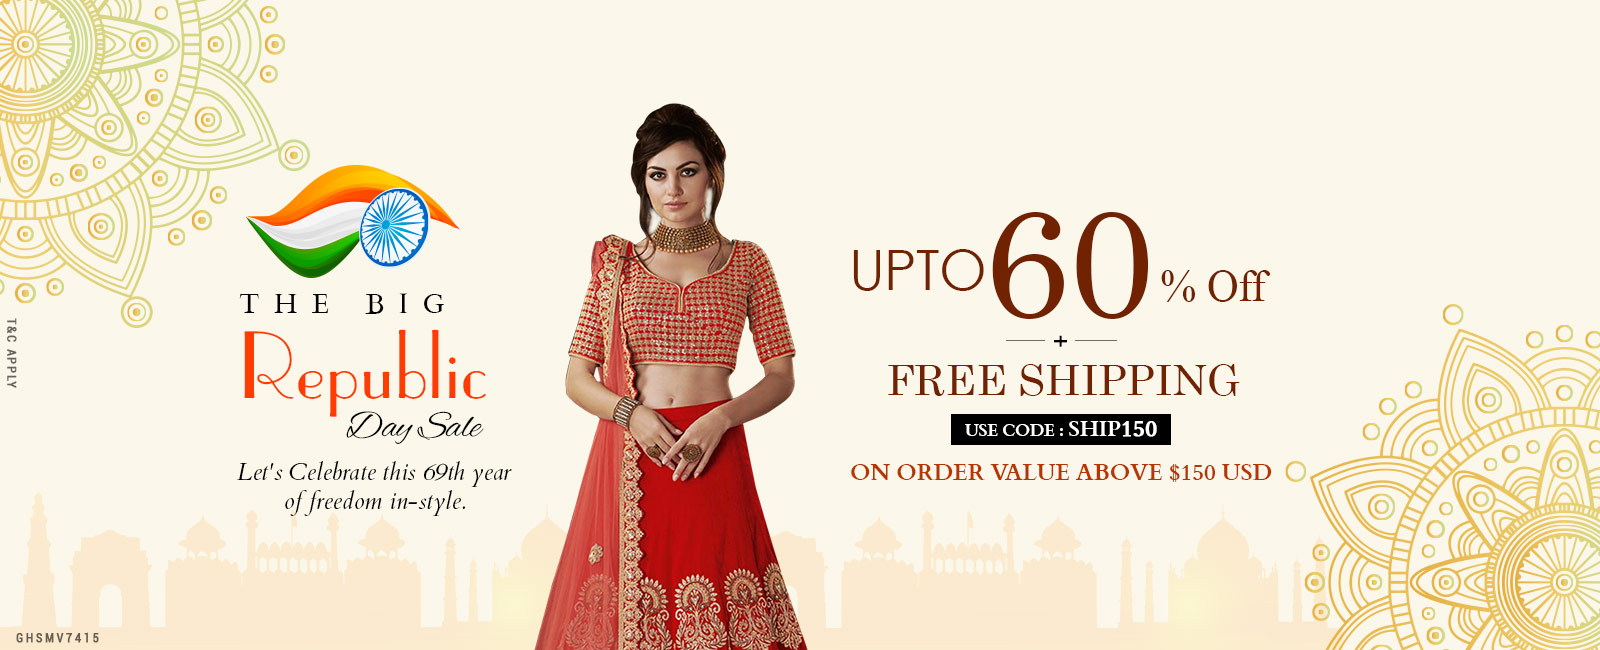 Upto 60% Off + Free Shipping